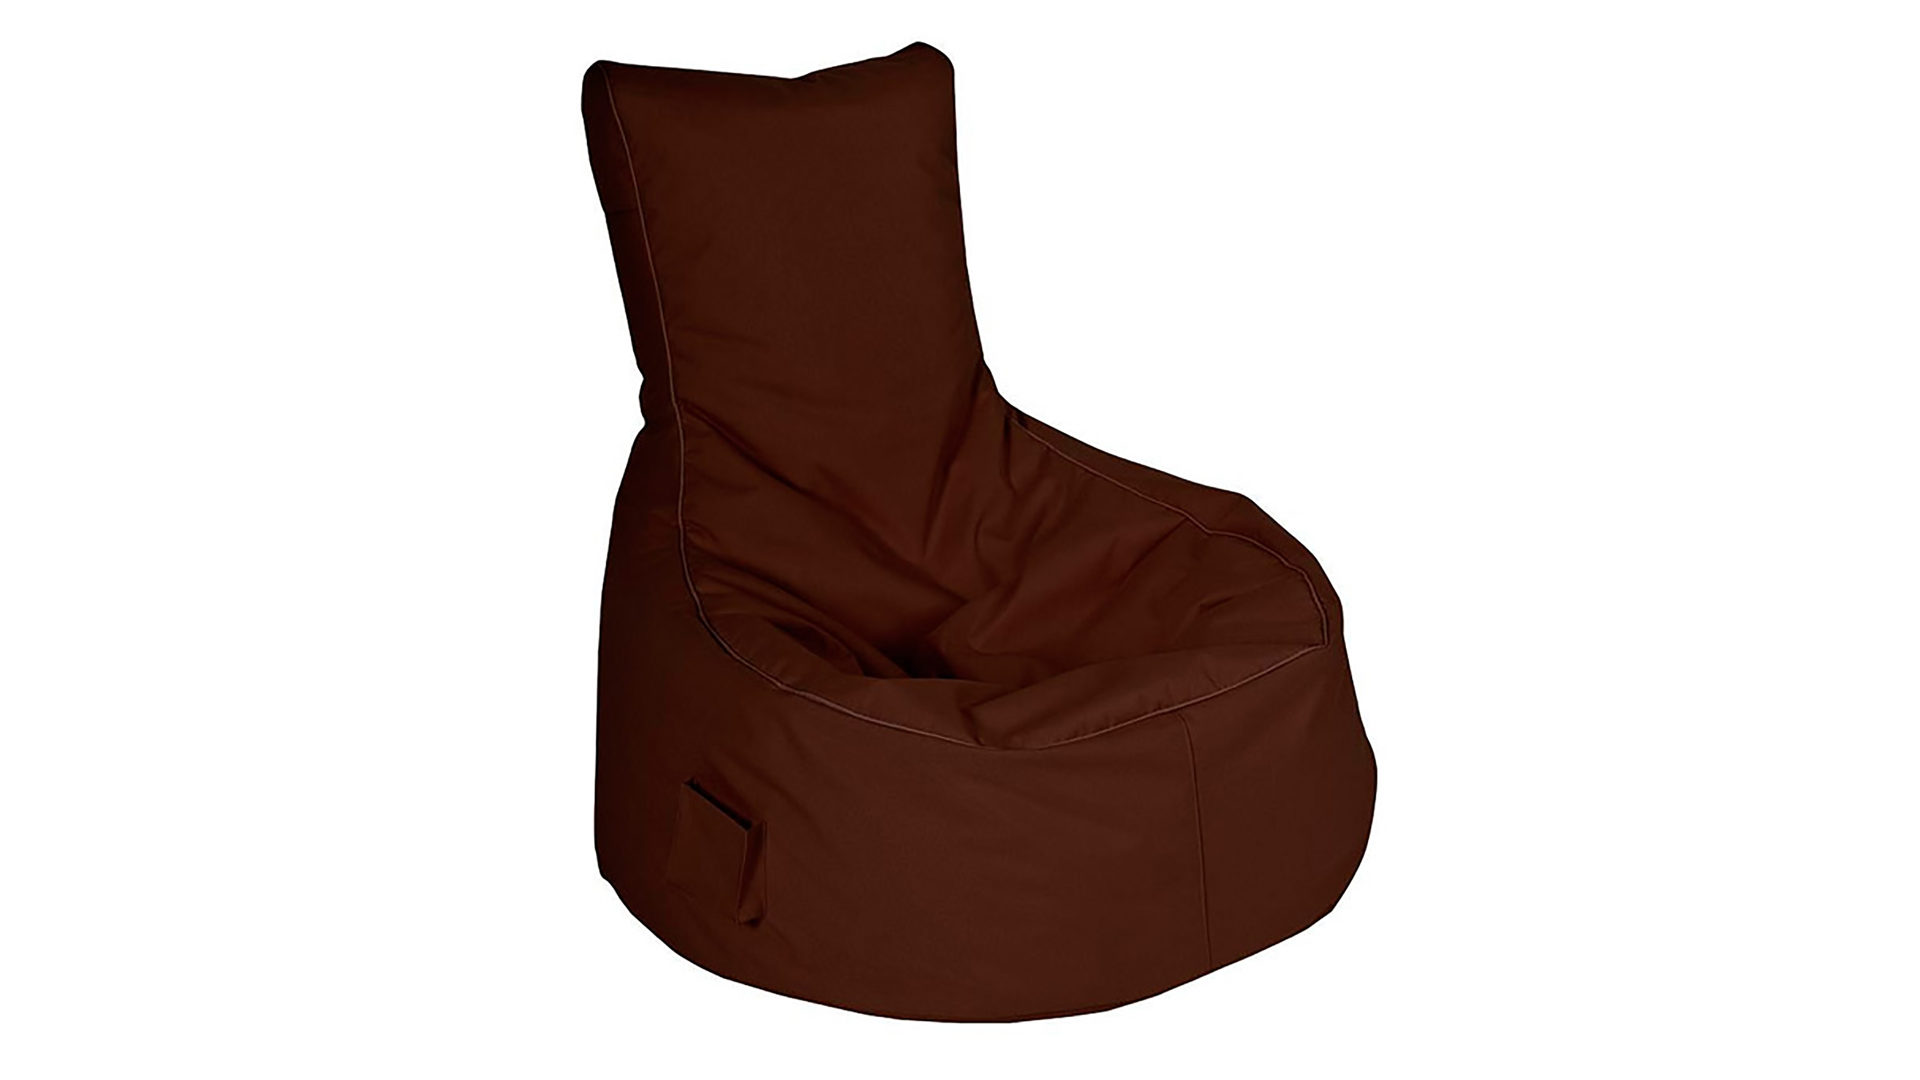 Sitzsack-Sessel Magma sitting point aus Stoff in Braun SITTING POINT Sitzsack-Sessel Scuba Swing dunkelbrauner Kunstfaserbezug - ca. 95 x 90 x 65 cm